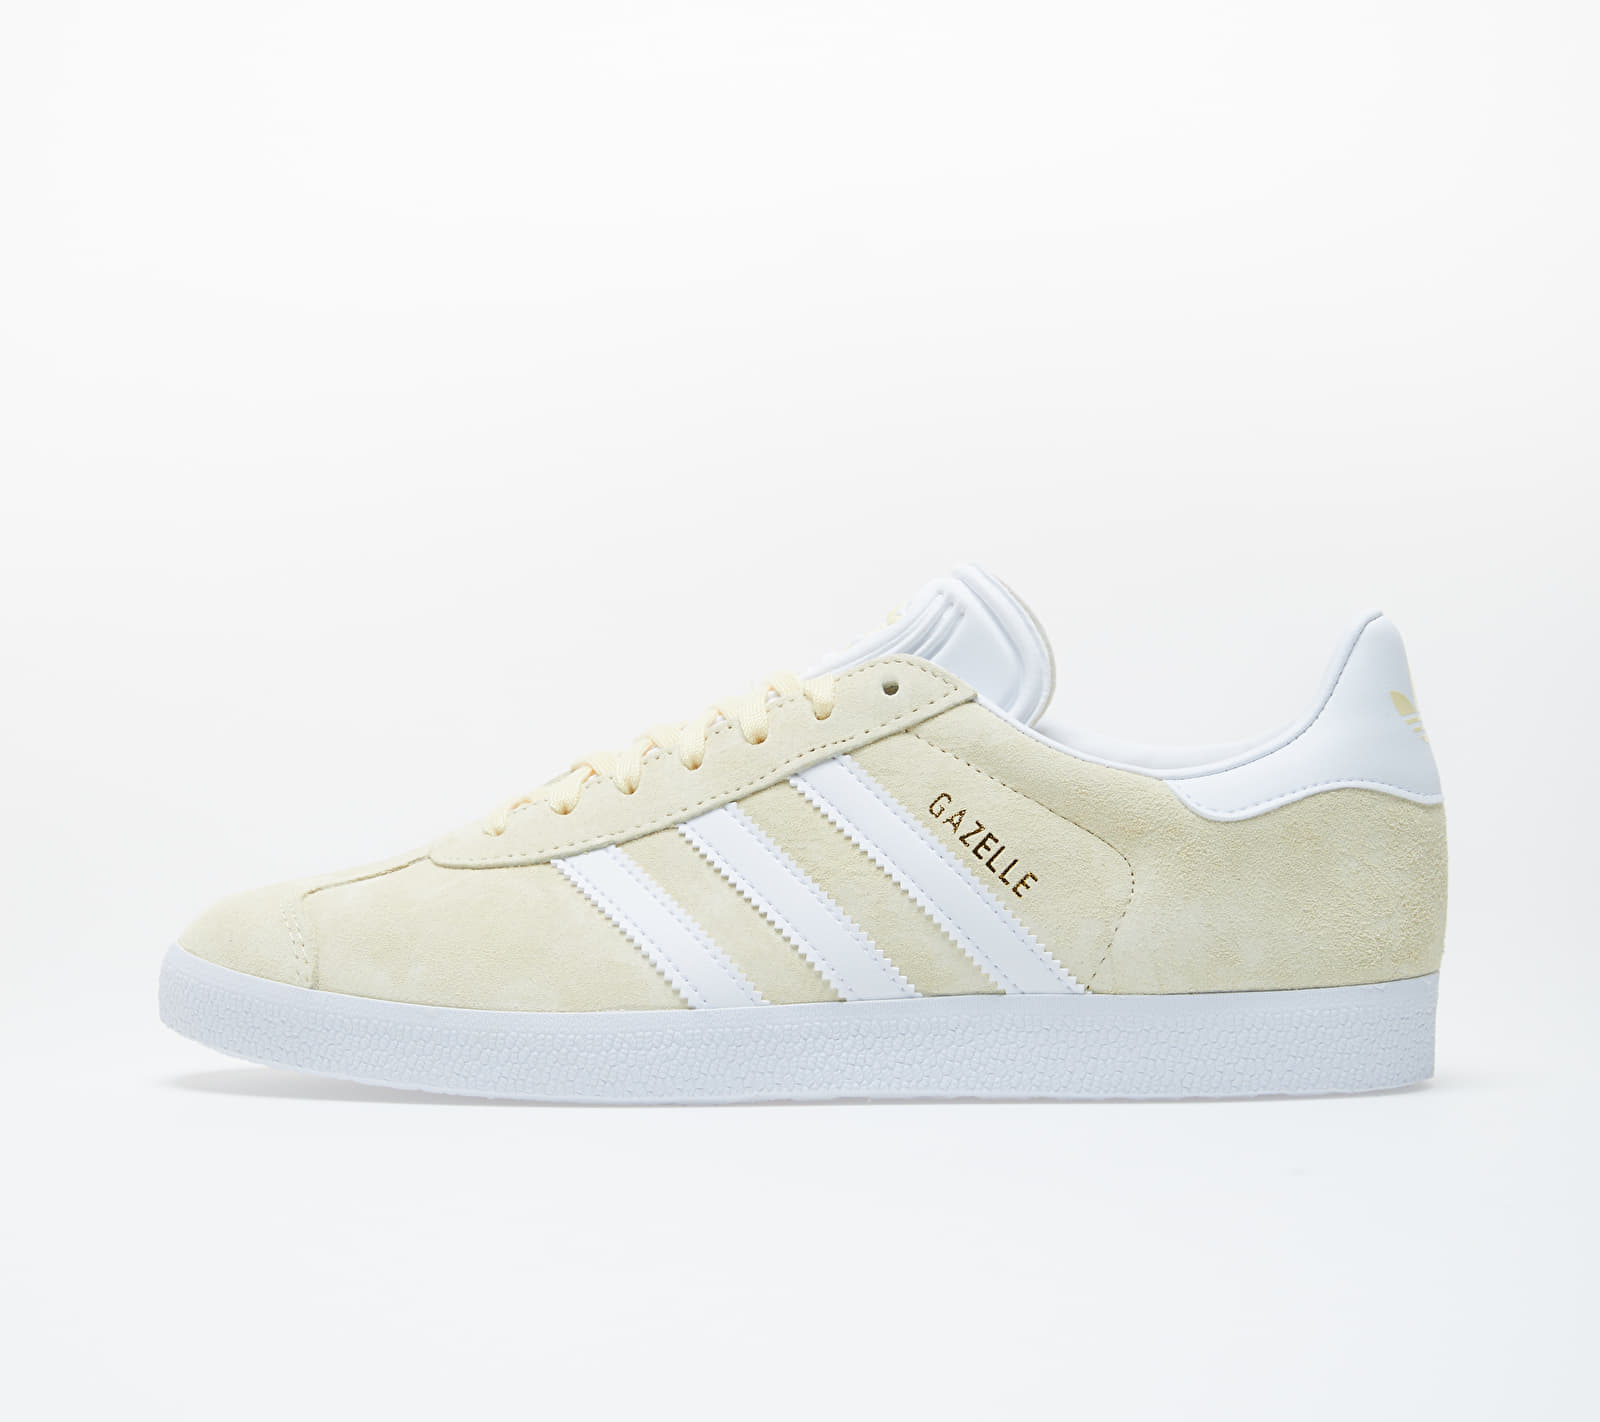 adidas Gazelle Easy Yellow/ Ftw White/ Gold Metalic EUR 47 1/3